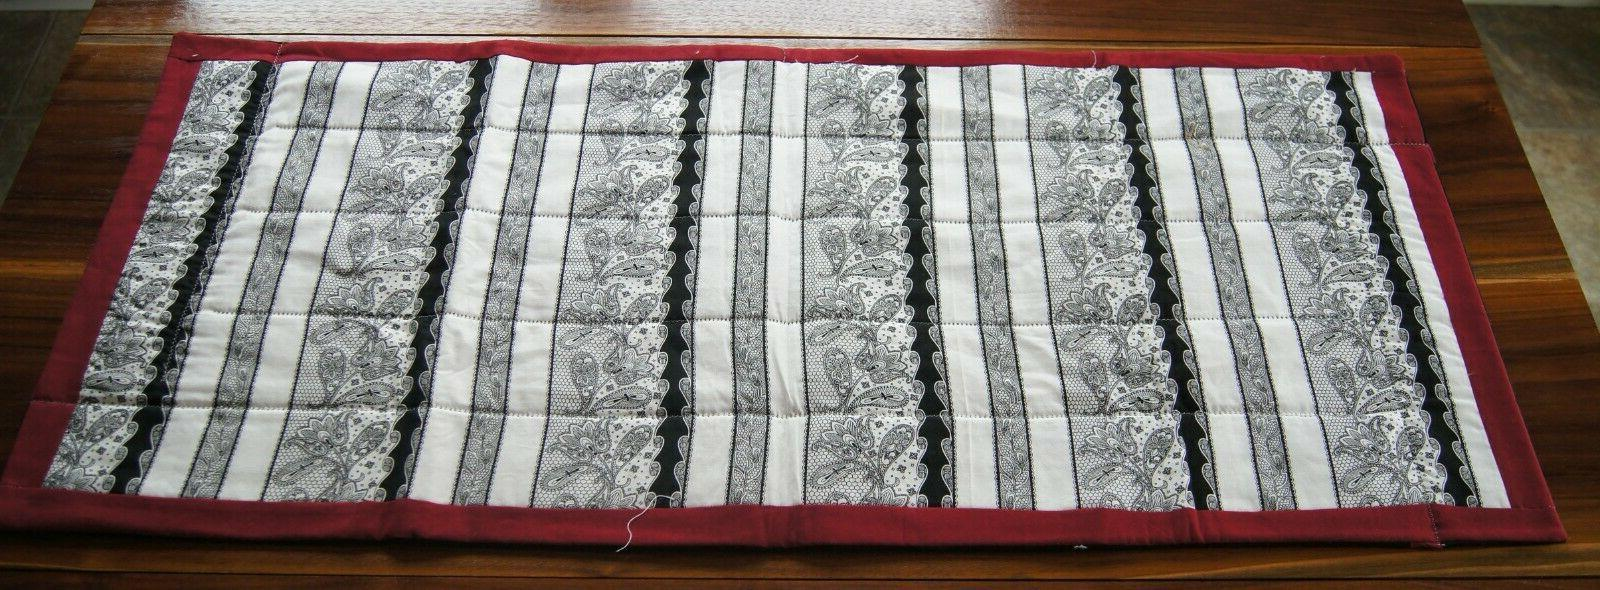 New! Handcrafted Black/White/Maroon Table Runner